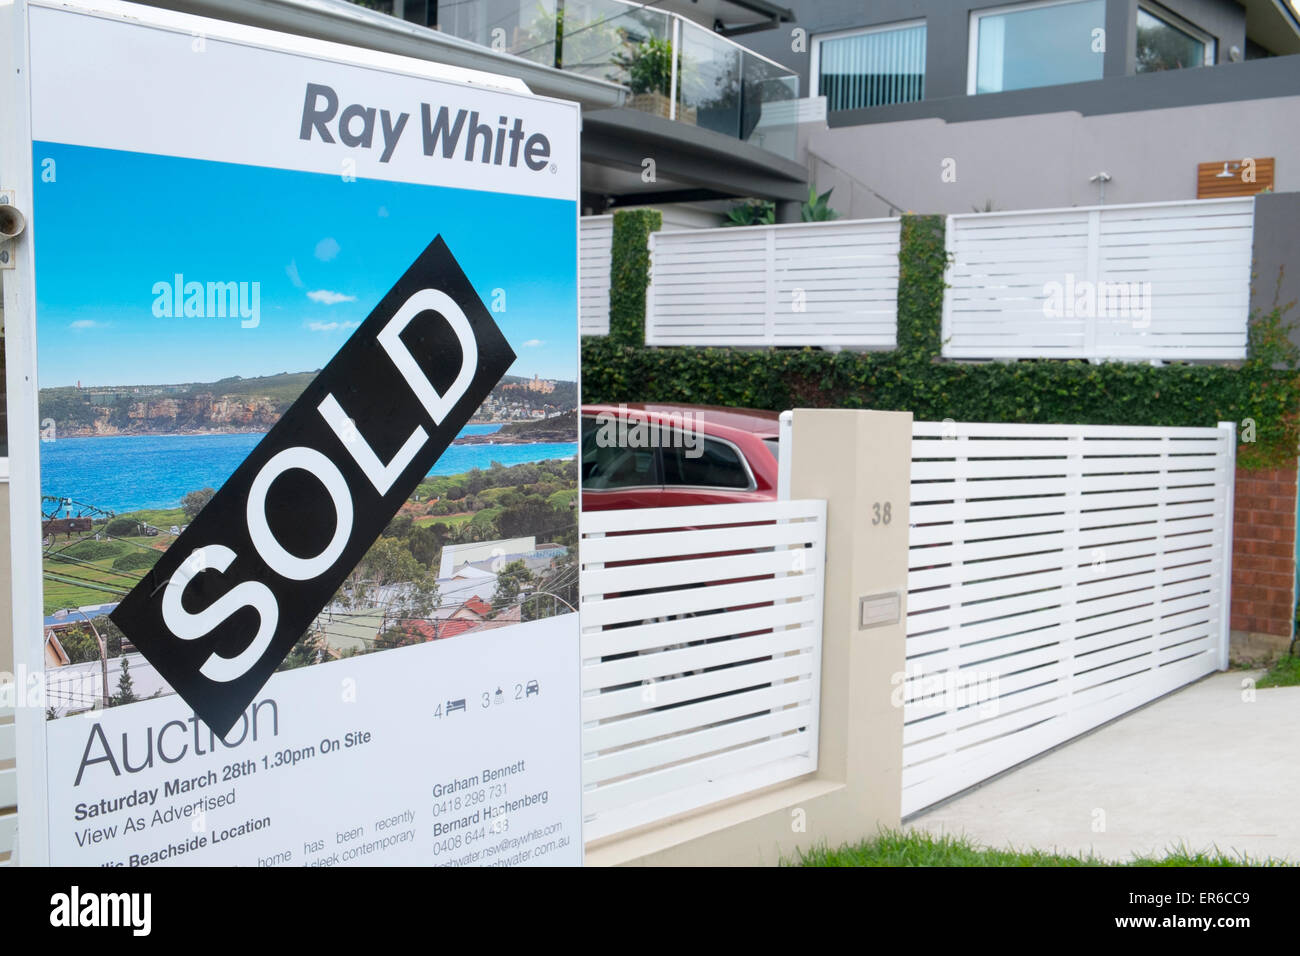 Home House Property For Sale Sold By Auction In Curl Curl Sydney,australia